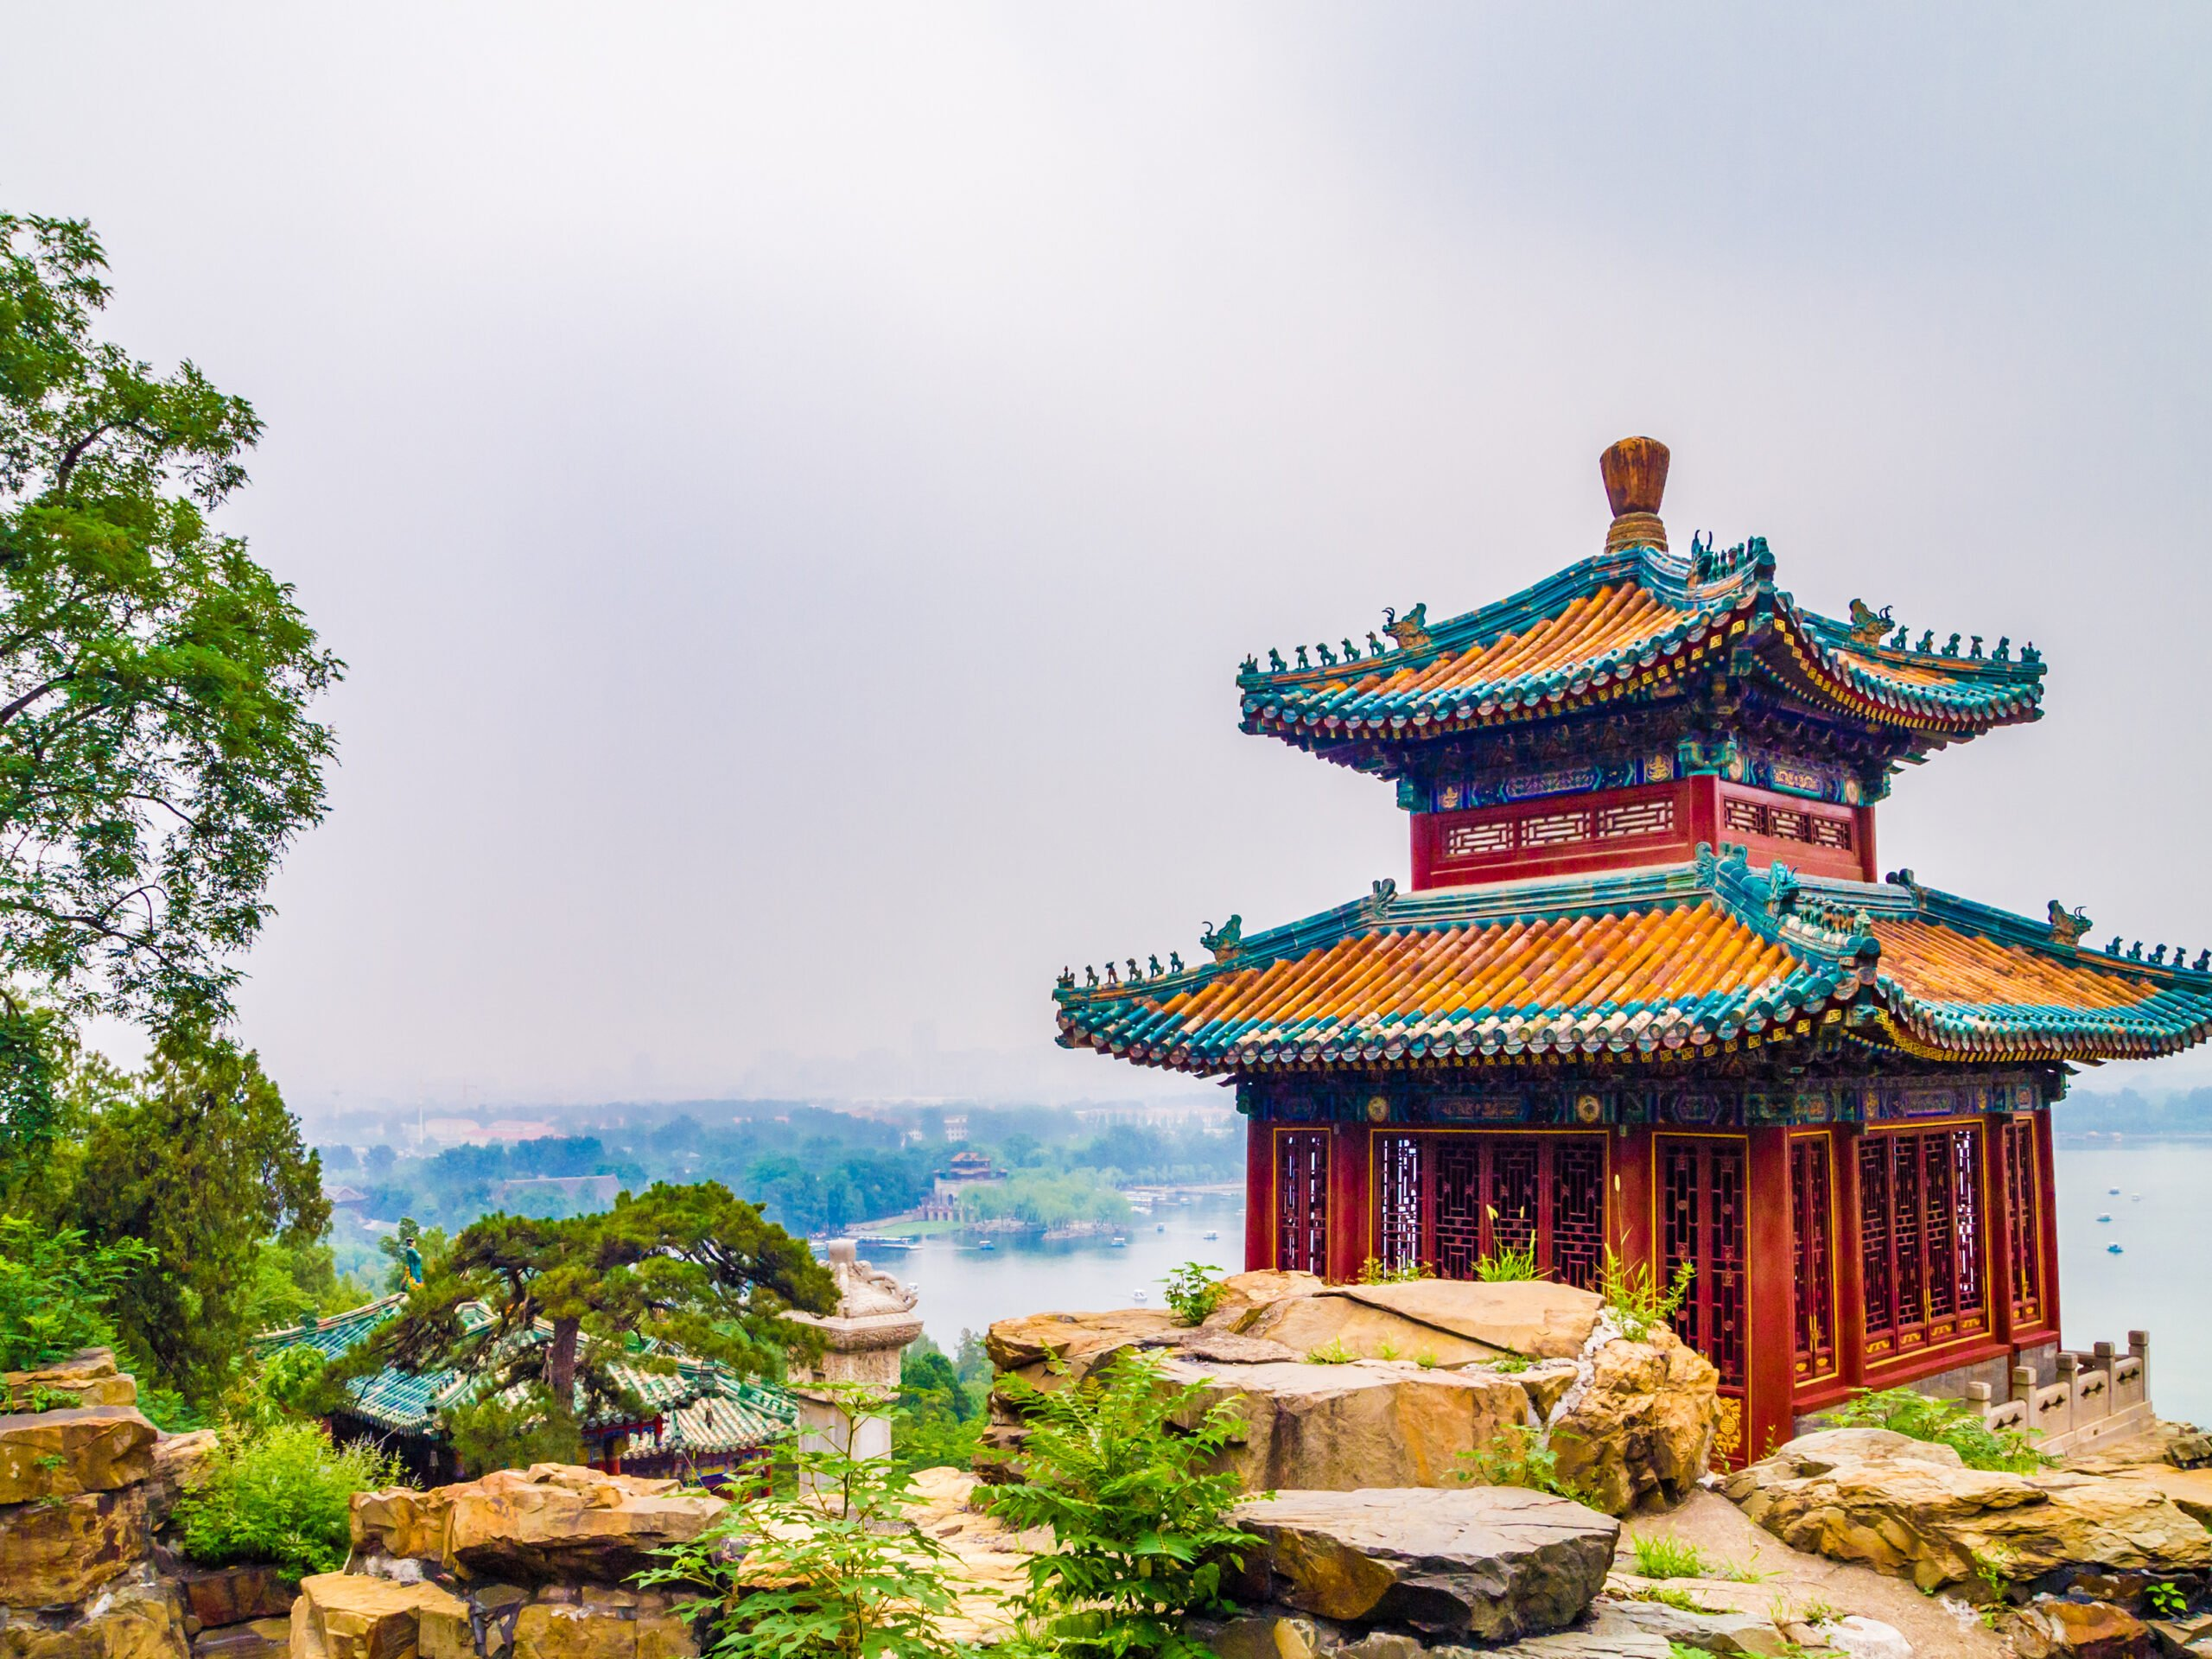 Discover The Ancient Summer Palace In Our China Express 7 Day Package Tour